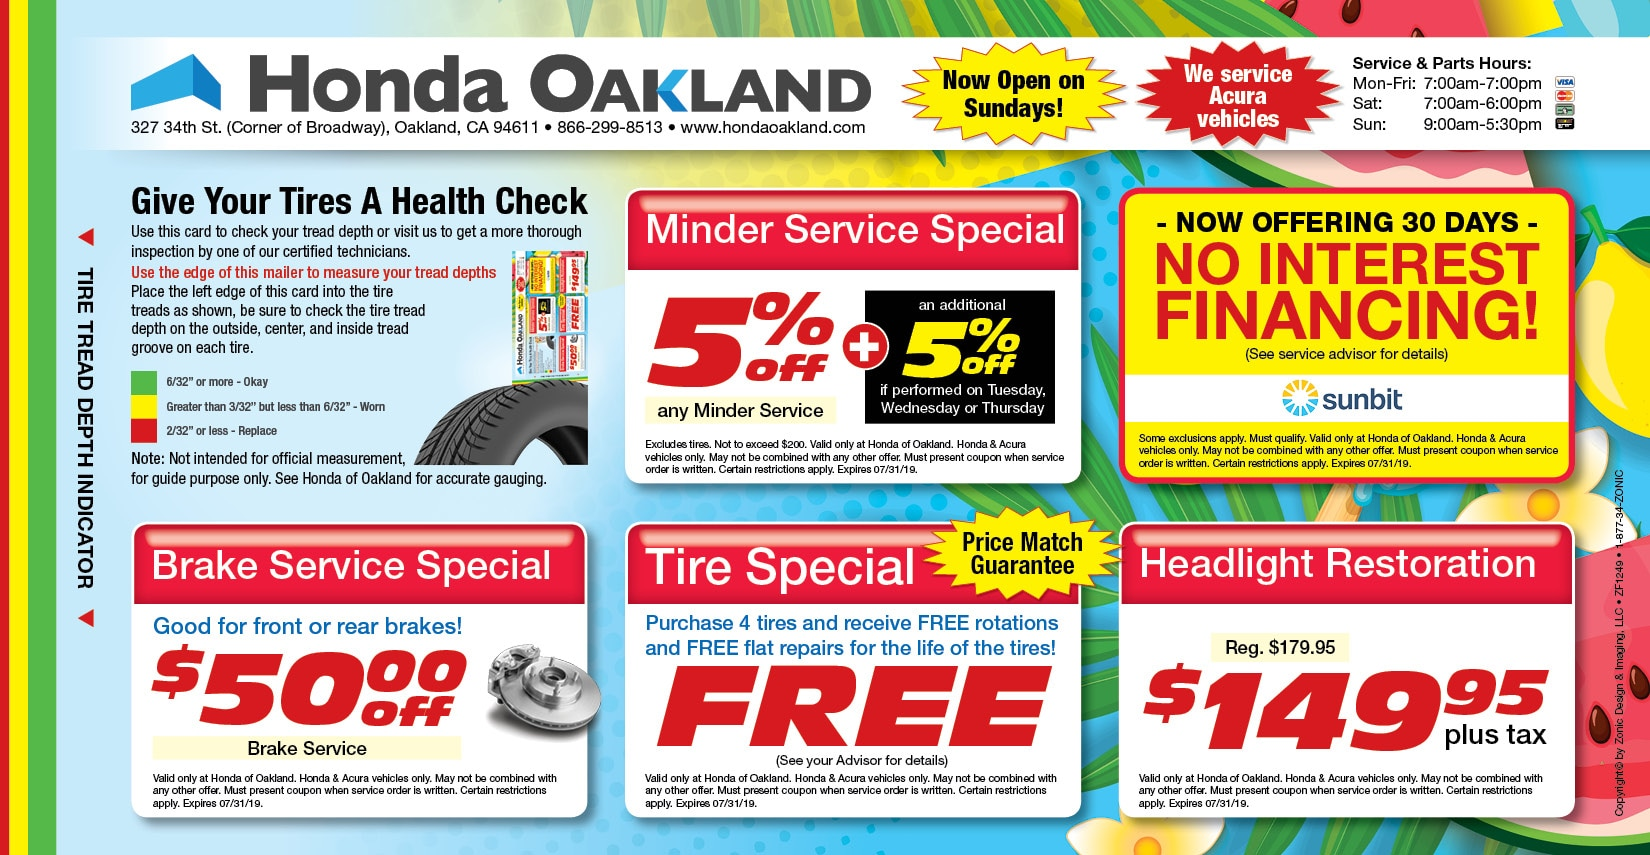 image regarding Take 5 Oil Change Coupons Printable titled Honda Services Offers Coupon codes within Oakland, CA